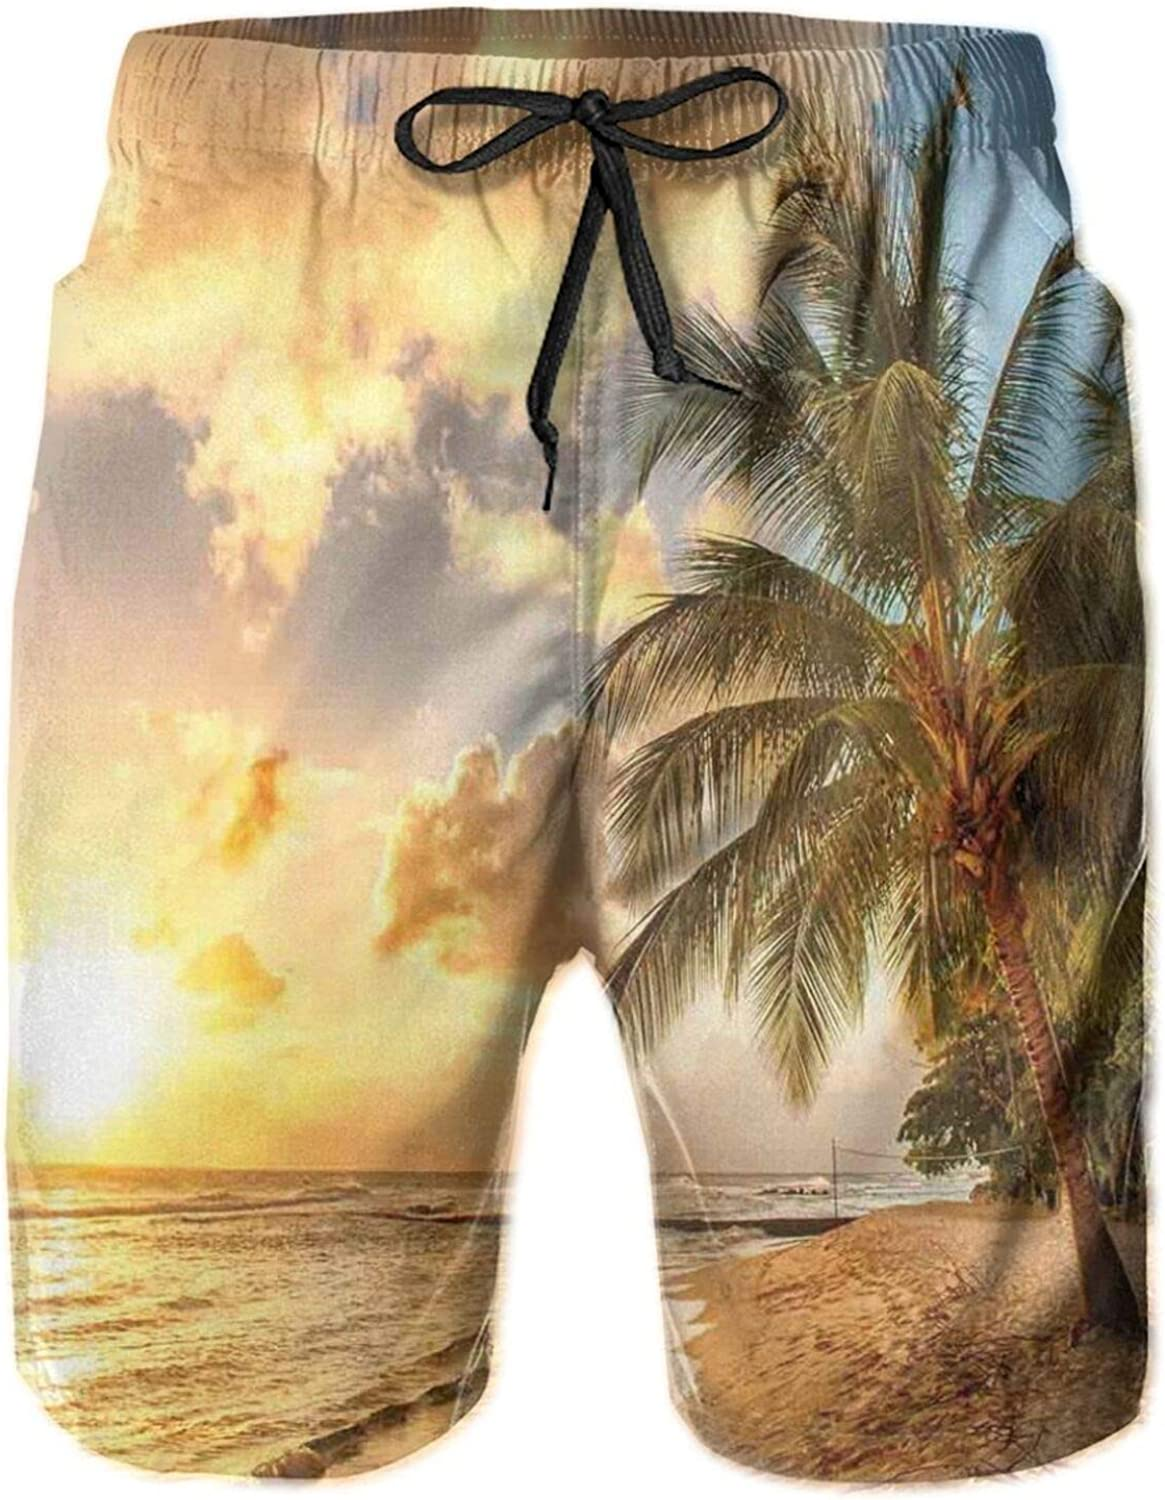 Tropic Sandy Beach with Horizon at The Sunset and Coconut Palm Trees Summer Photo Mens Swim Shorts Casual Workout Short Pants Drawstring Beach Shorts,XXL